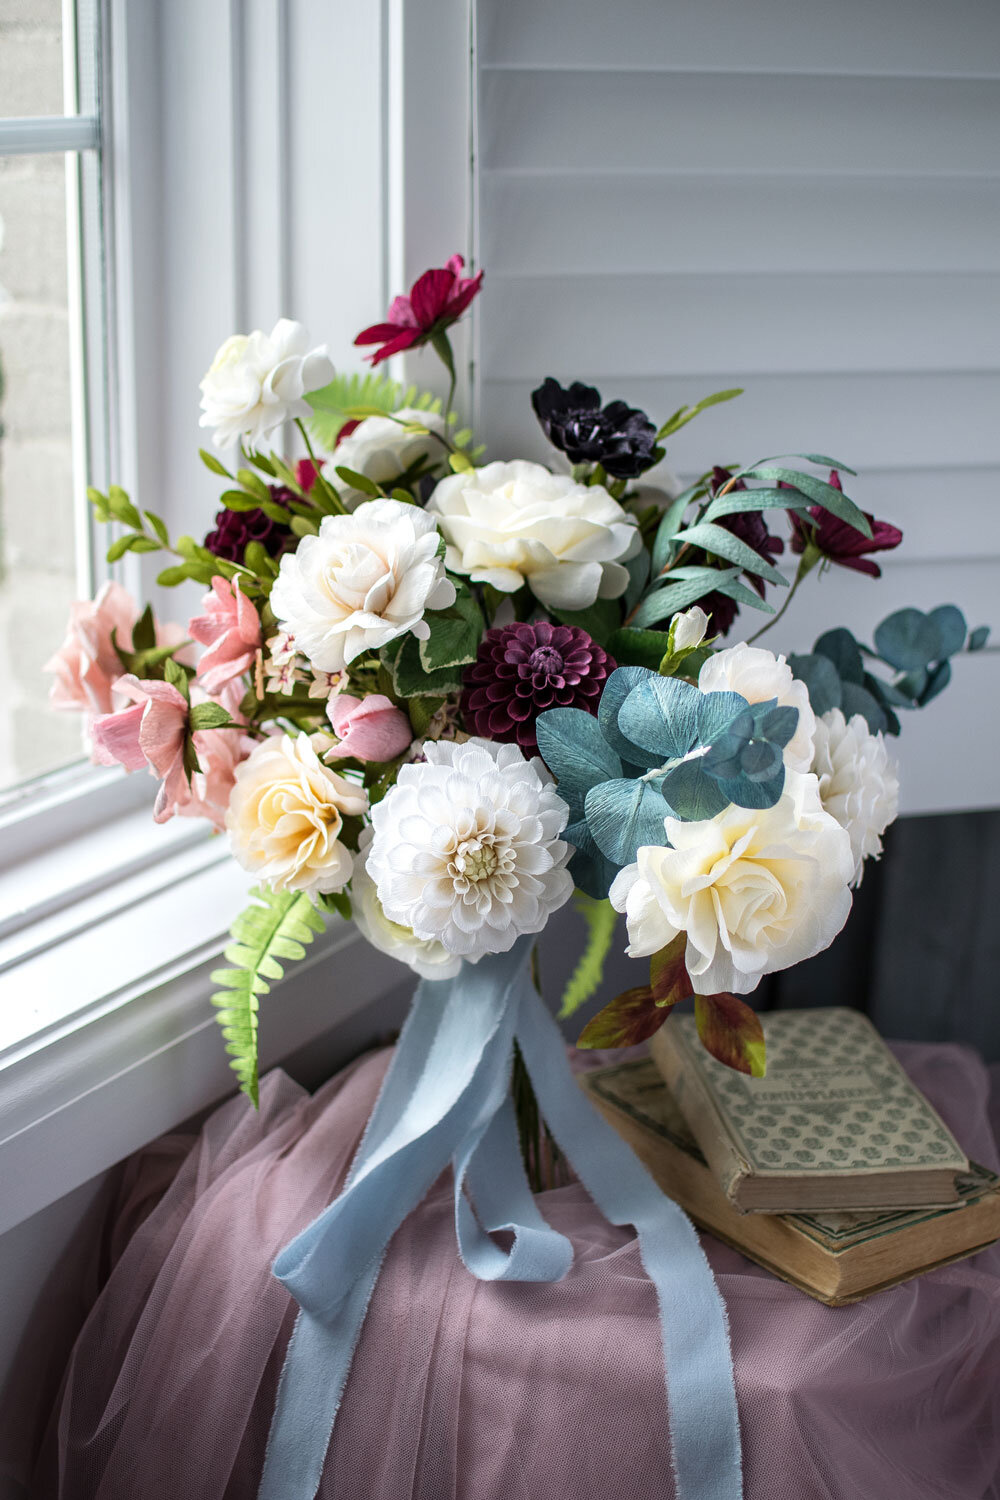 Mauve,-Burgundy,-and-White-Bouquet-with-Dahlias,-Roses,-Ranunculus,-Scabiosa-(by-Crafted-to-Bloom).JPG